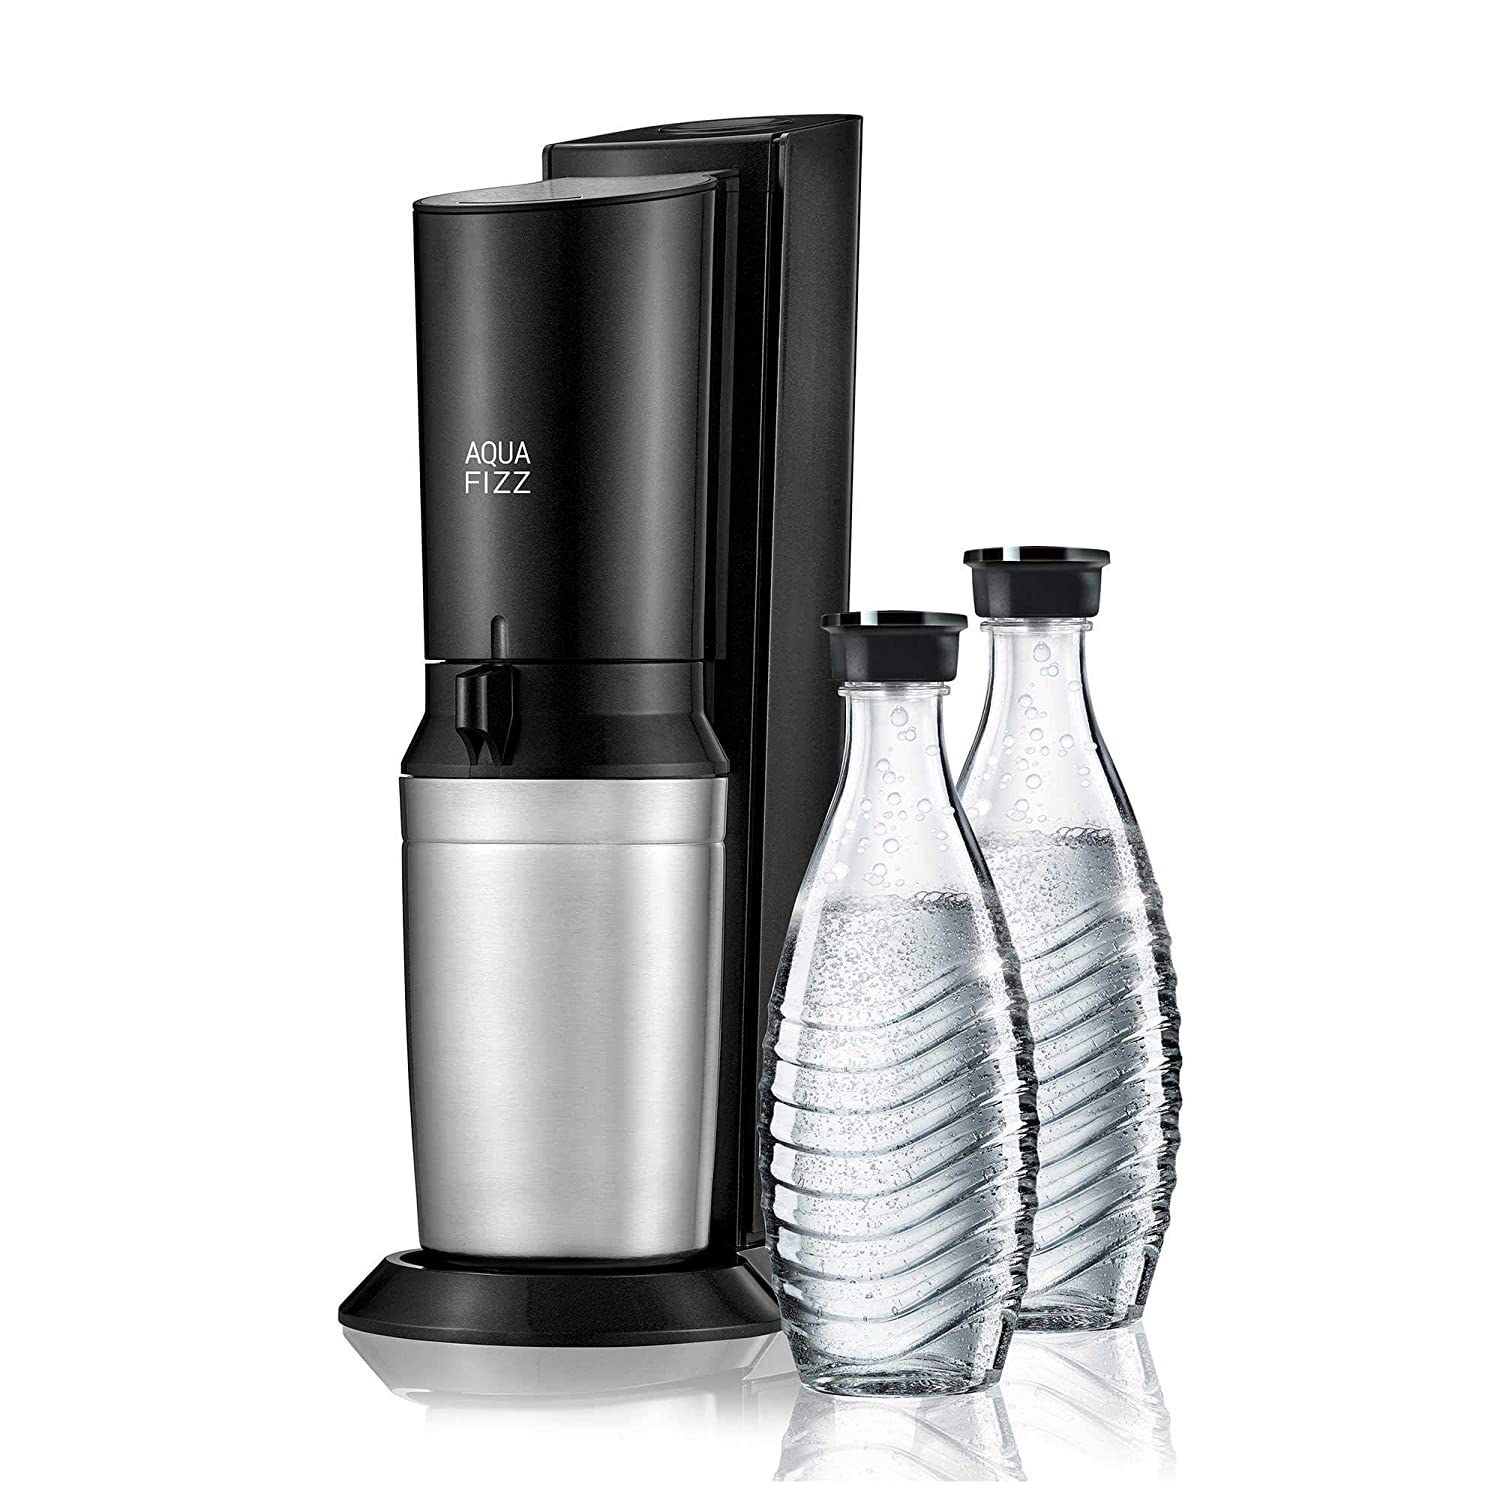 SodaStream Aqua Fizz Sparkling Water Maker Starter Kit with 2 Glass Carafes with Fizz Preserving Caps and 1 60L CO2 Cylinder, Elegant and Stylish Design, Turns Tap into Sparkling Water in Seconds! .Aqua Fizz.